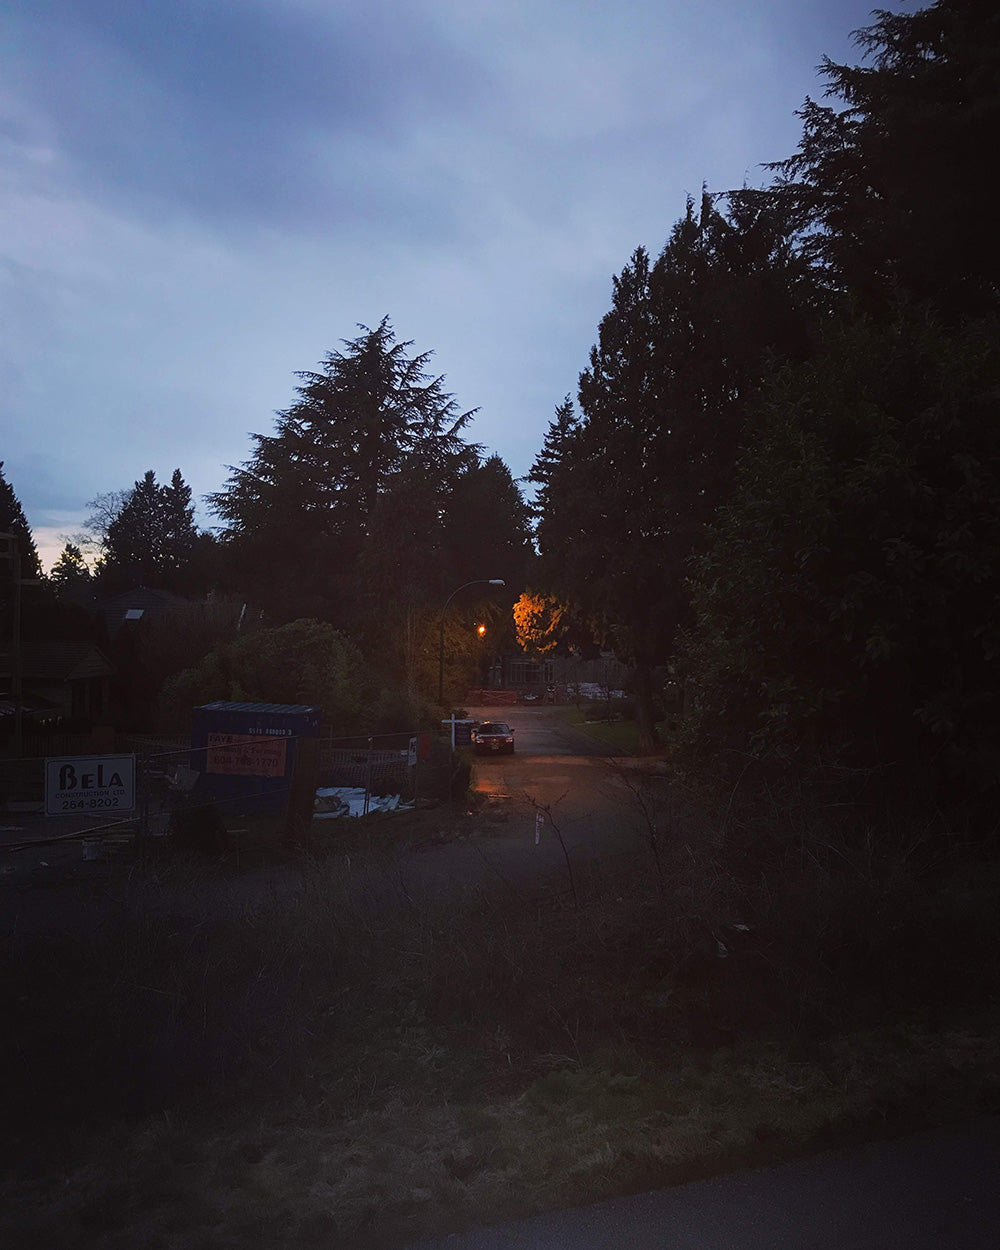 SPITGAN WEBZINE #3, Photo 1, View from Arbutus Street bike path at twilight in Vancouver, BC